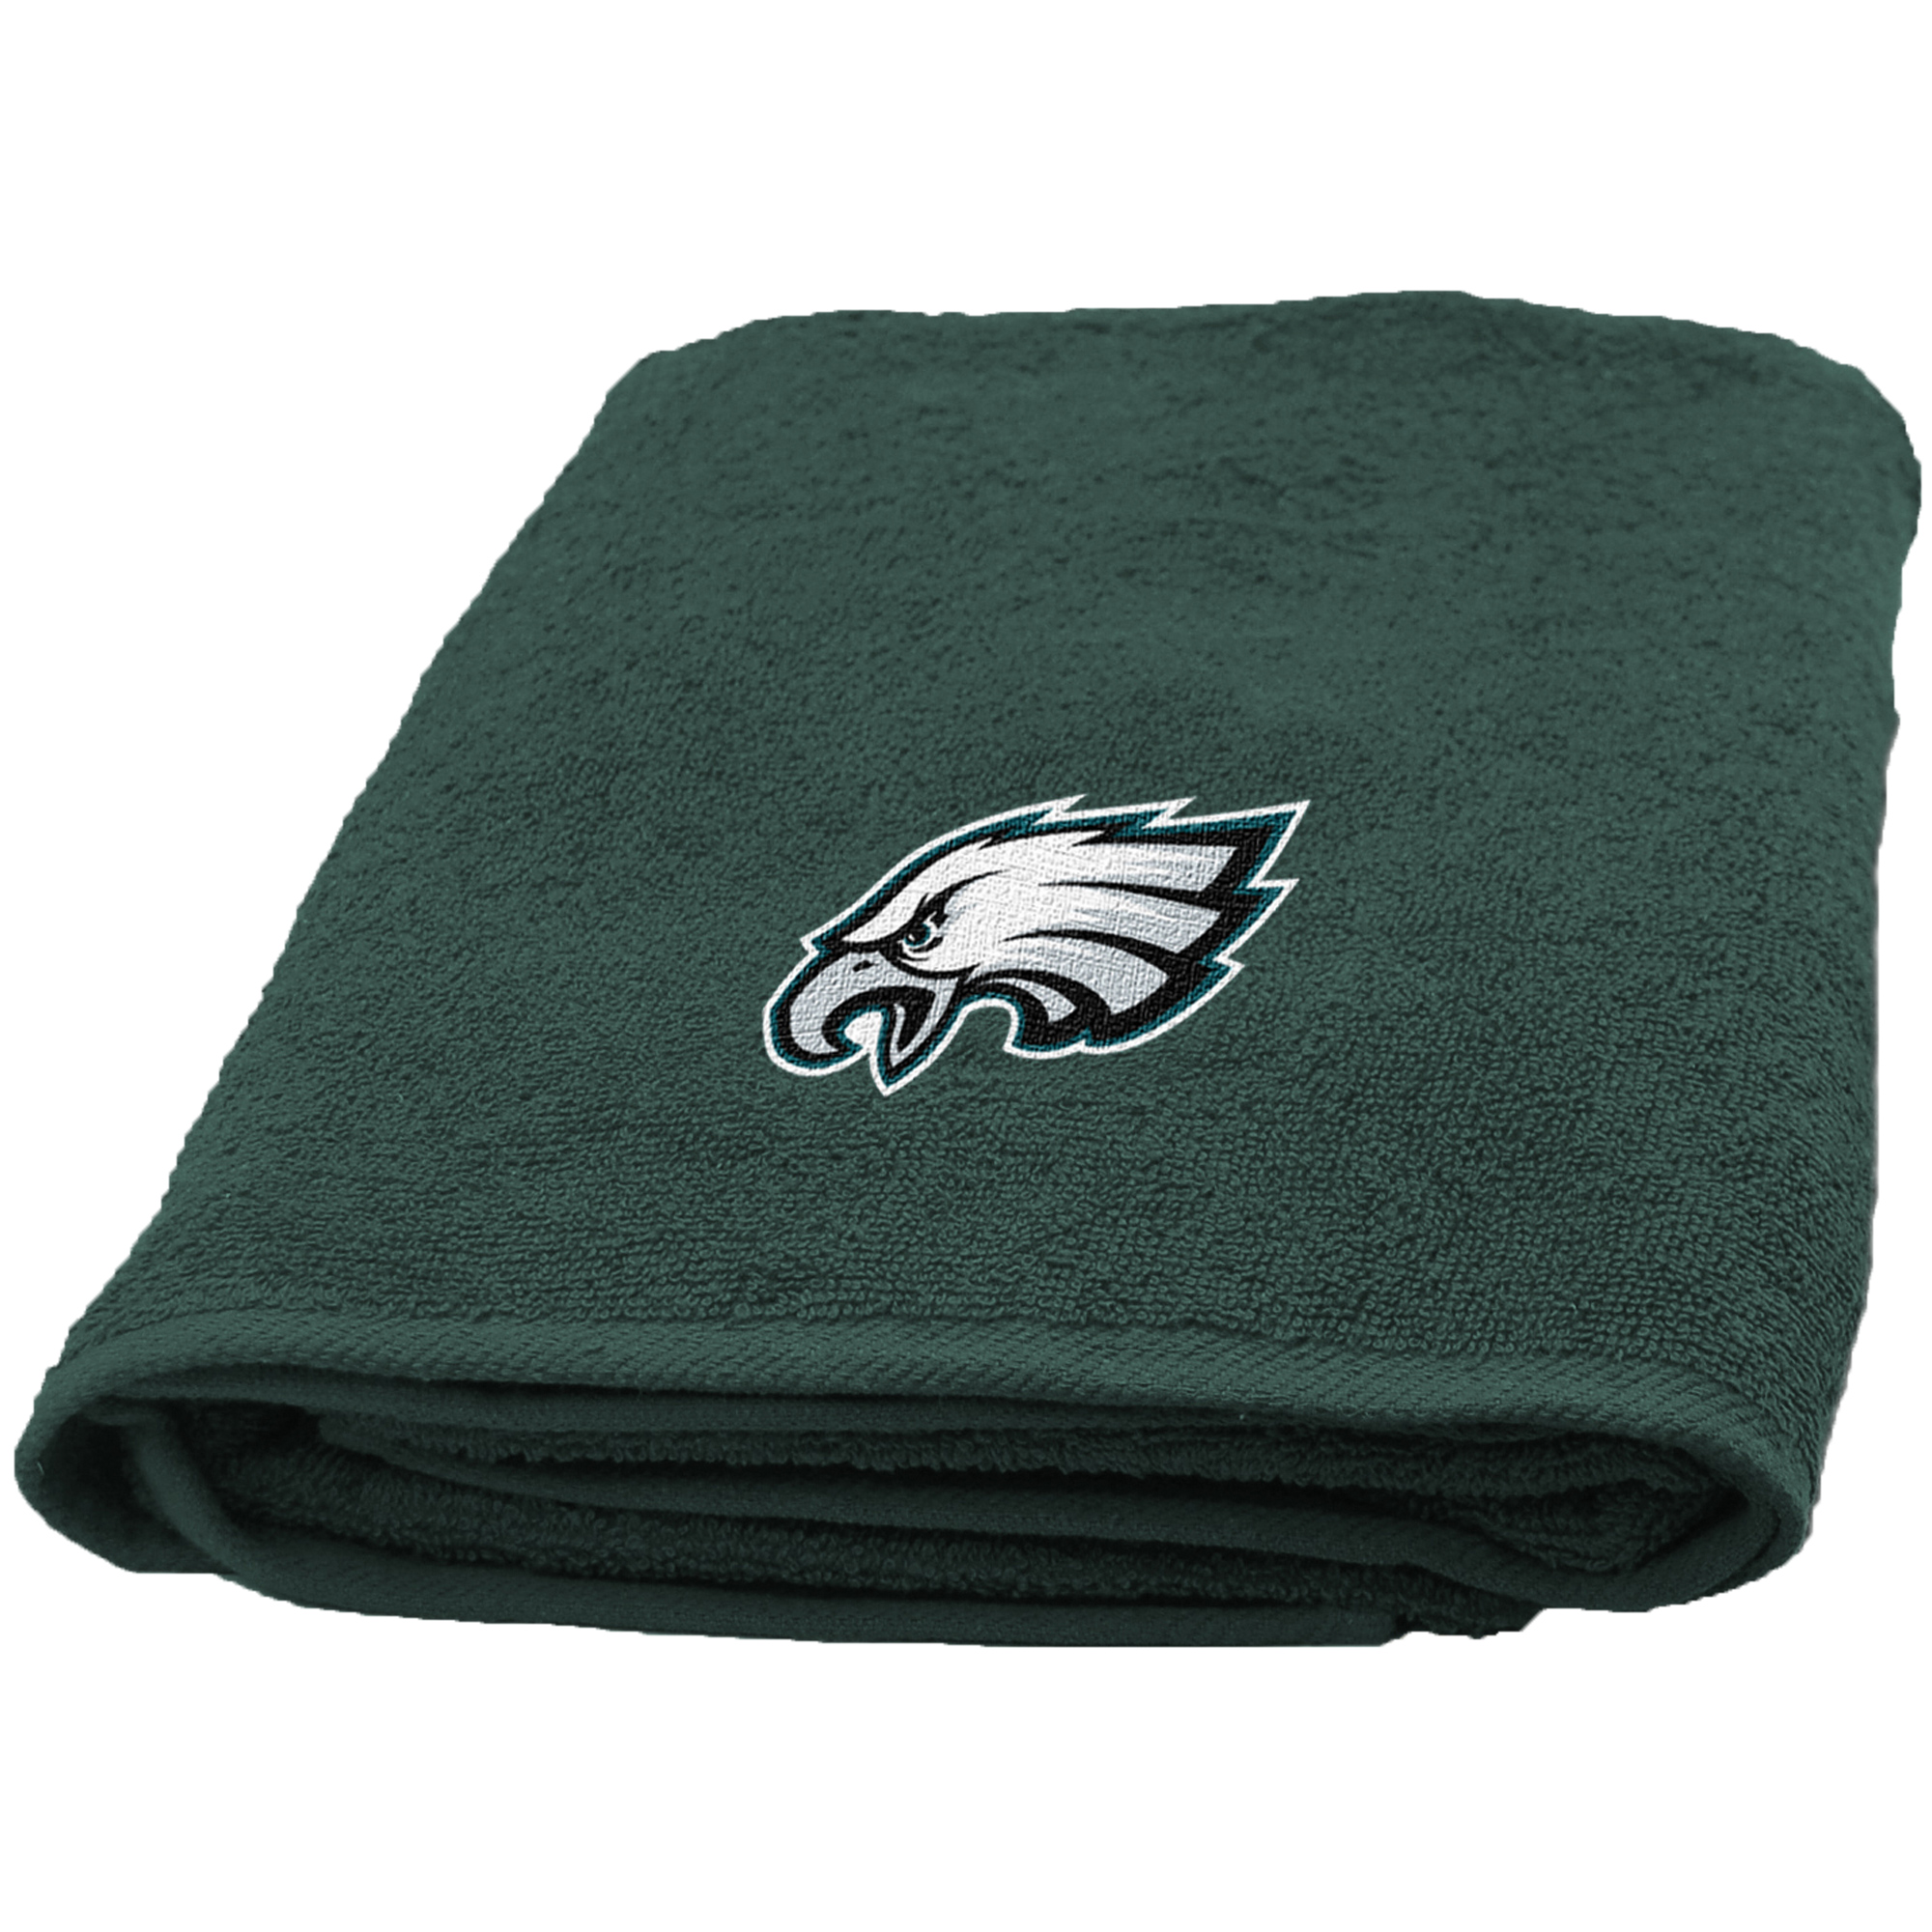 NFL Philadelphia Eagles Bath Towel, 1 Each